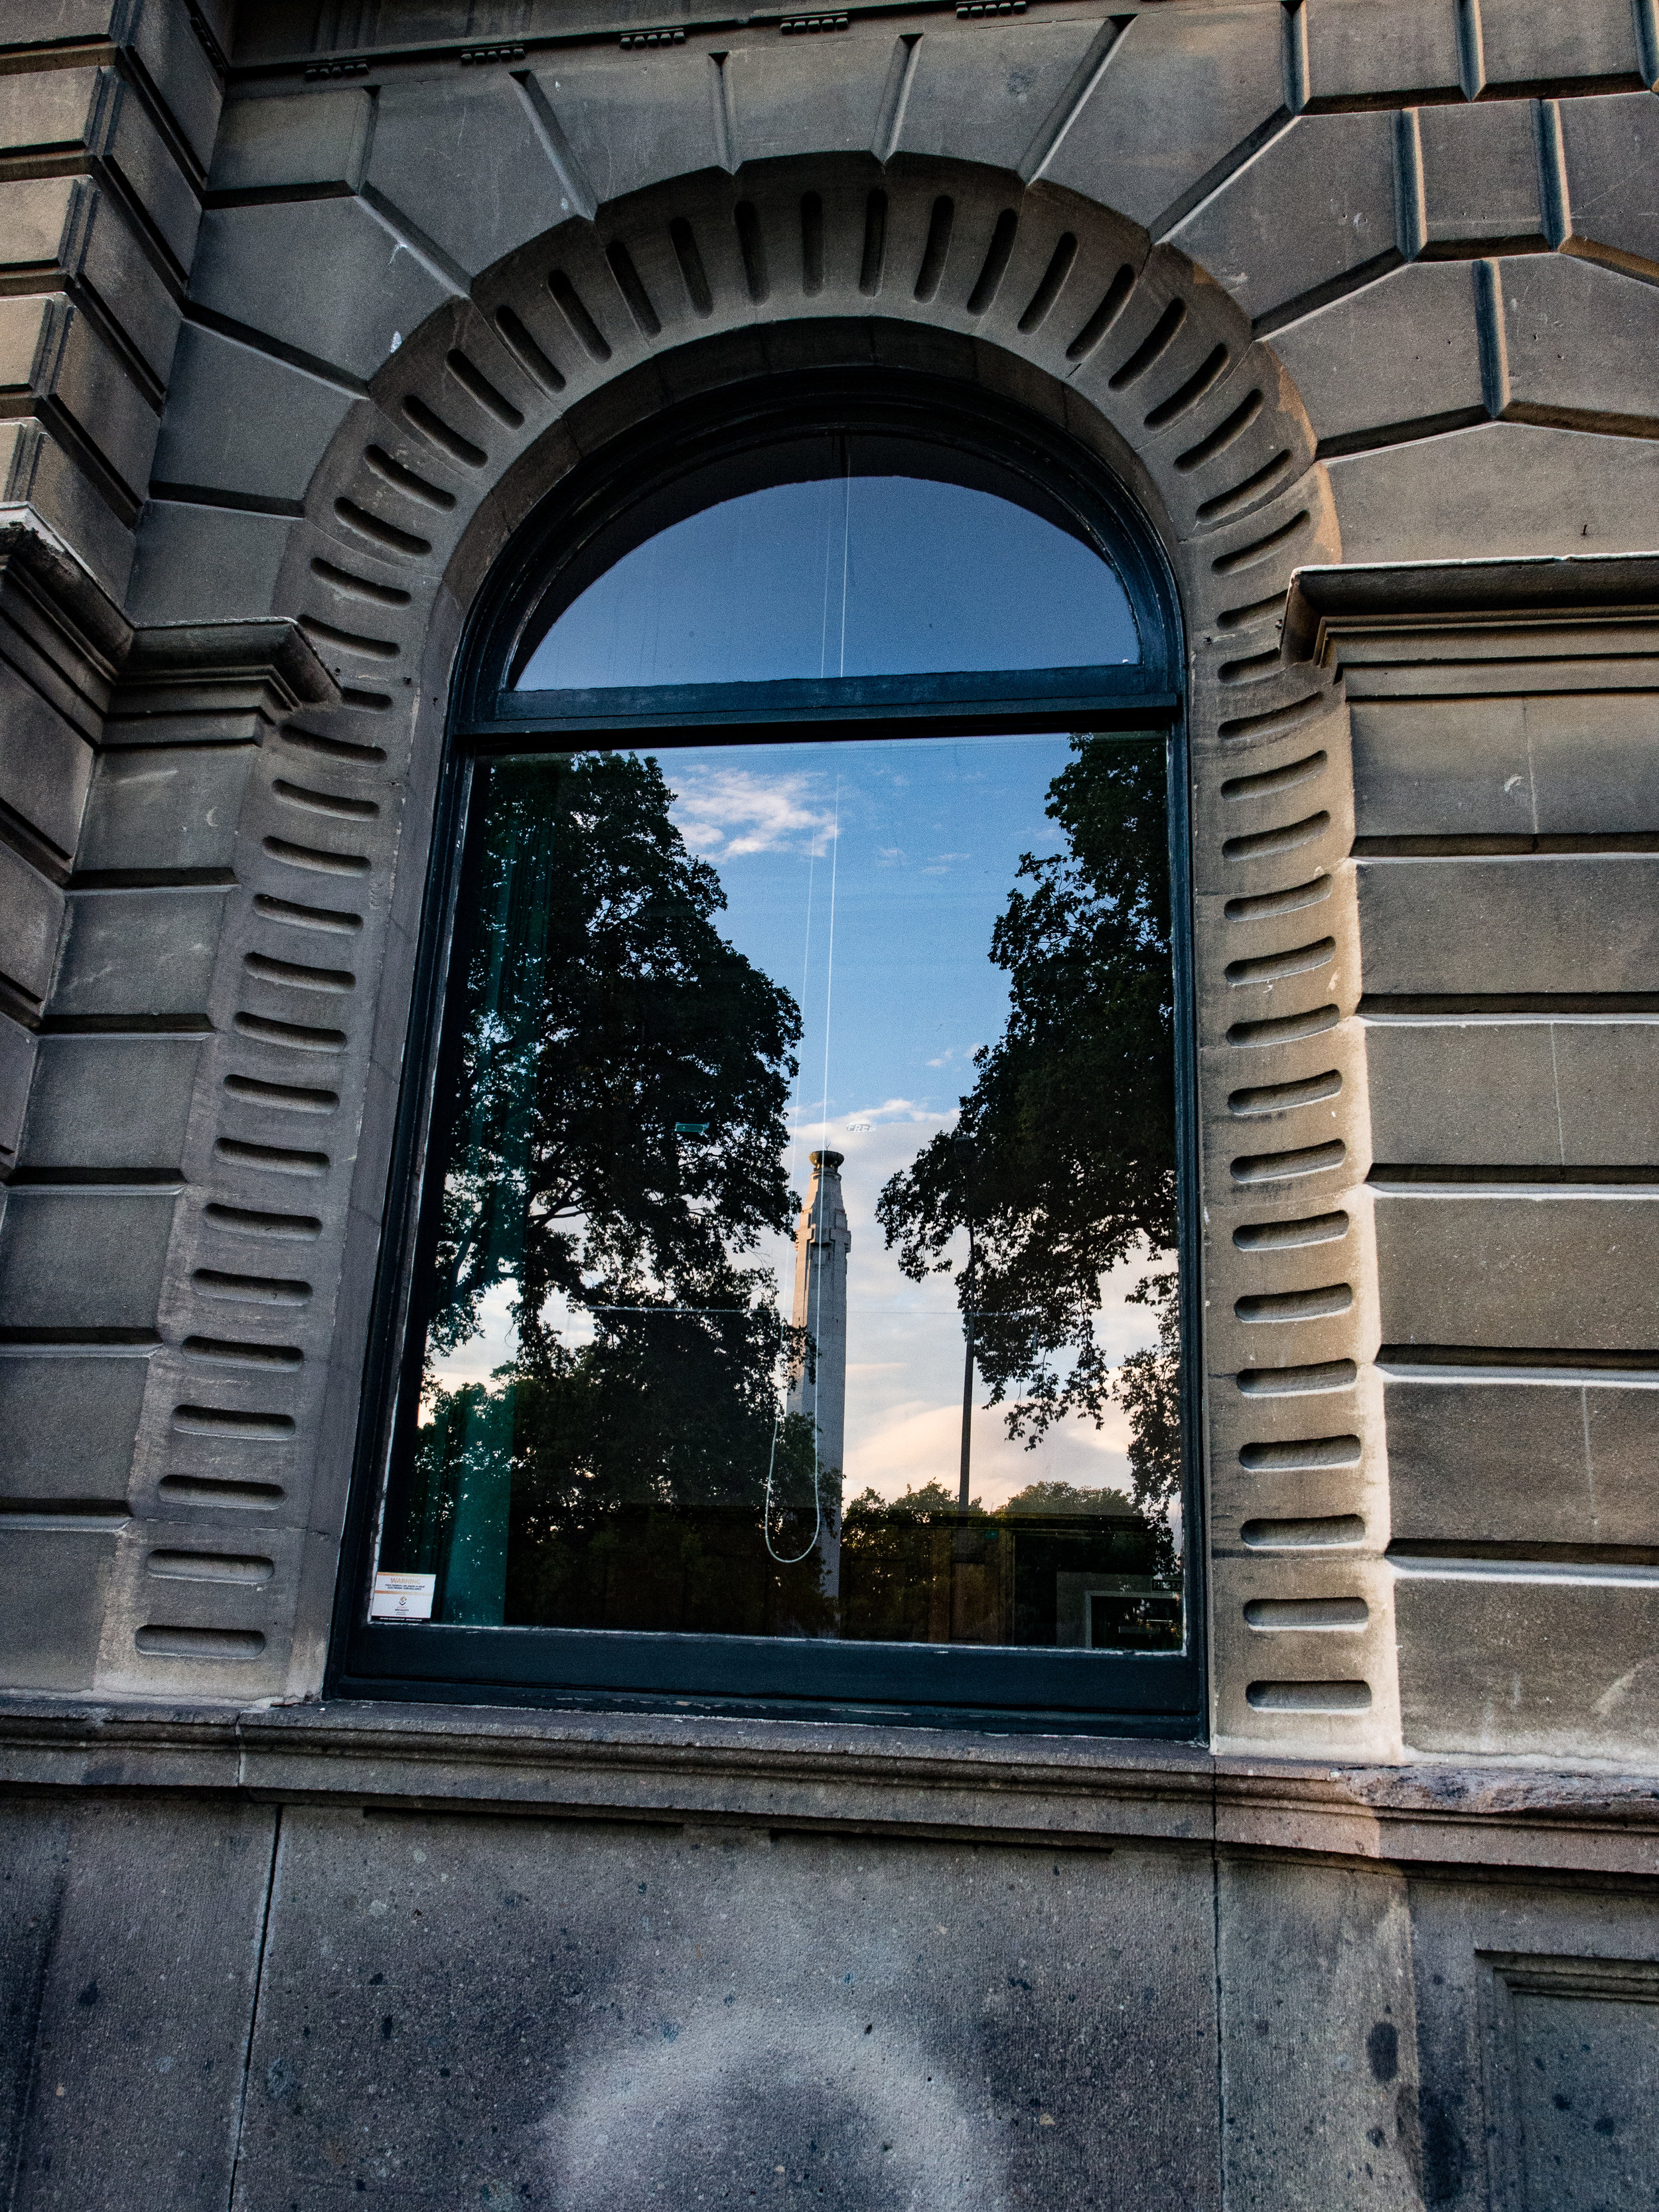 Cenotaph in Dunedin reflected in arched window